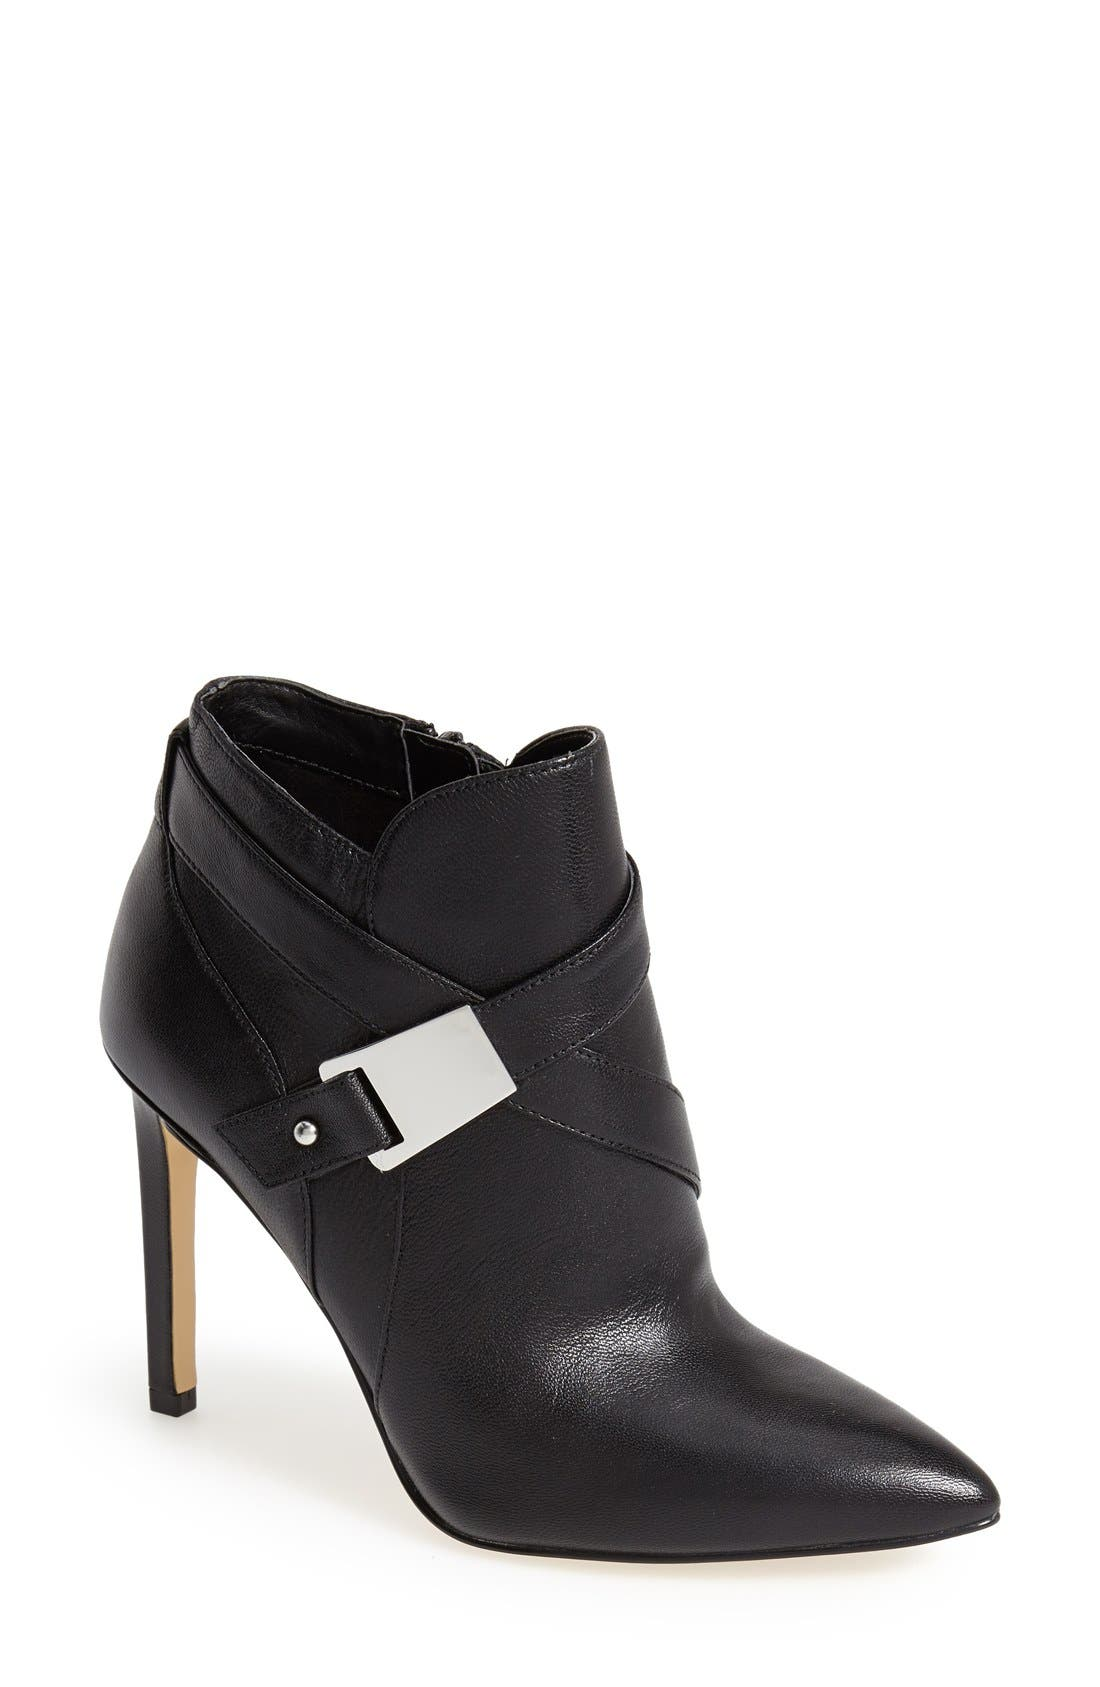 Main Image - GUESS 'Valari' Leather Pointy Toe Bootie (Women)